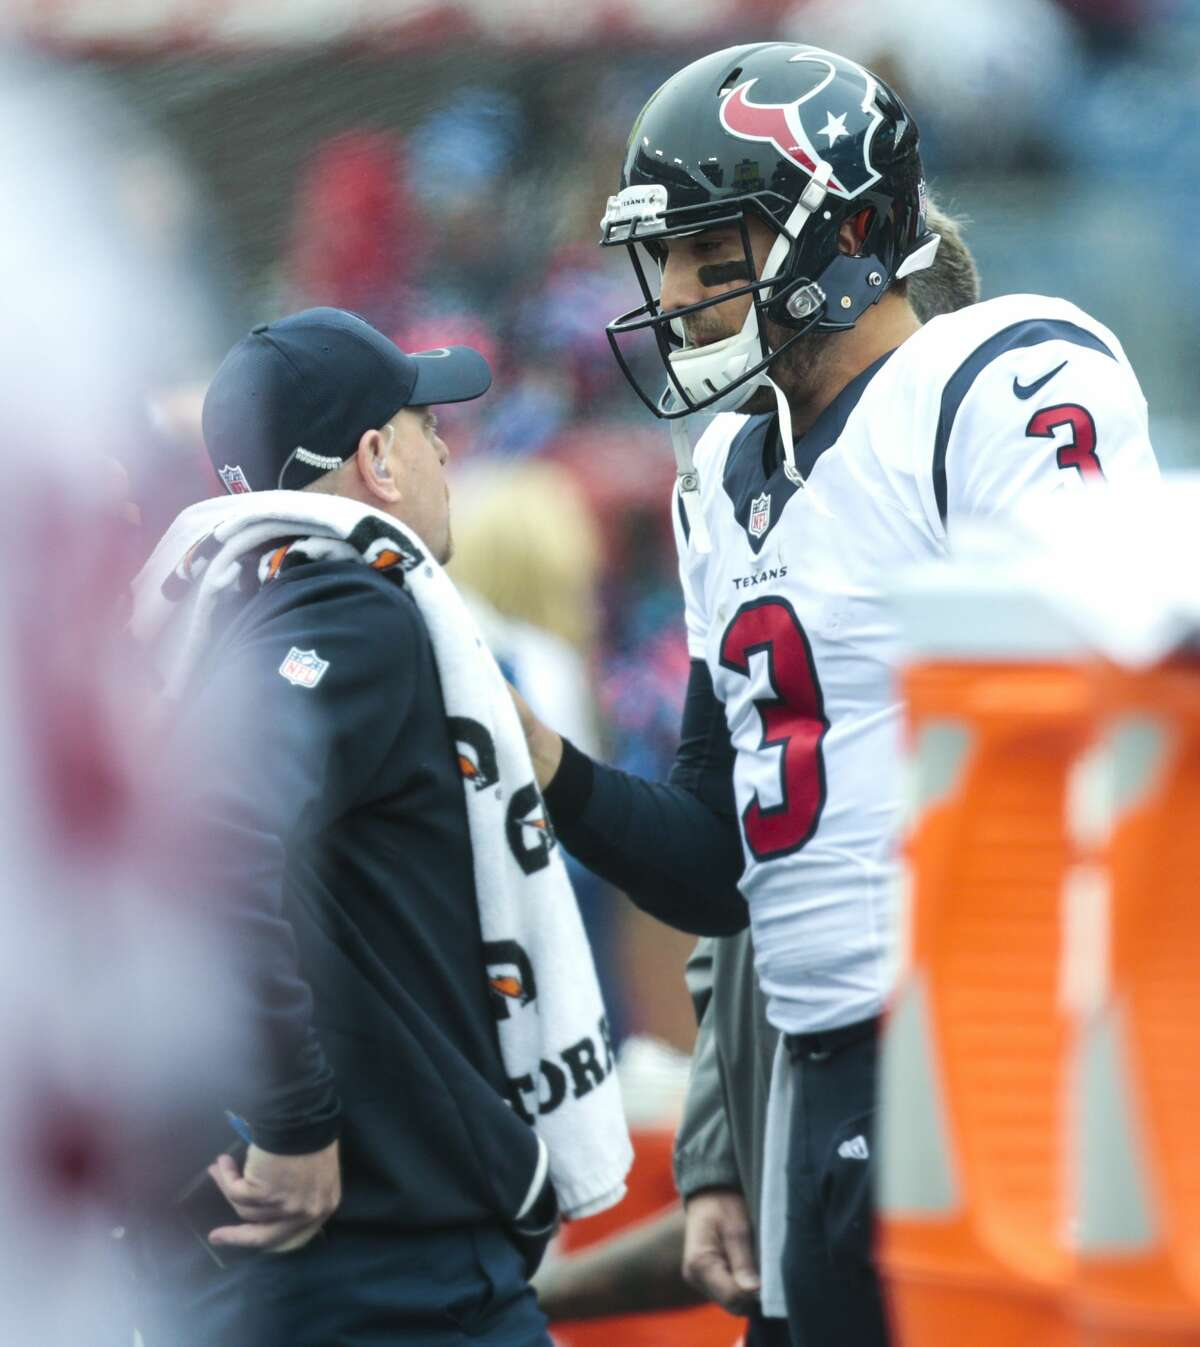 Houston Texans trainer Geoff Kaplan talks to quarterback Tom Savage after Savage left the game against the Tennessee Titans with an injury during the second quarter of an NFL football game at Nissan Stadium on Sunday, Jan. 1, 2017, in Nashville. ( Brett Coomer / Houston Chronicle )